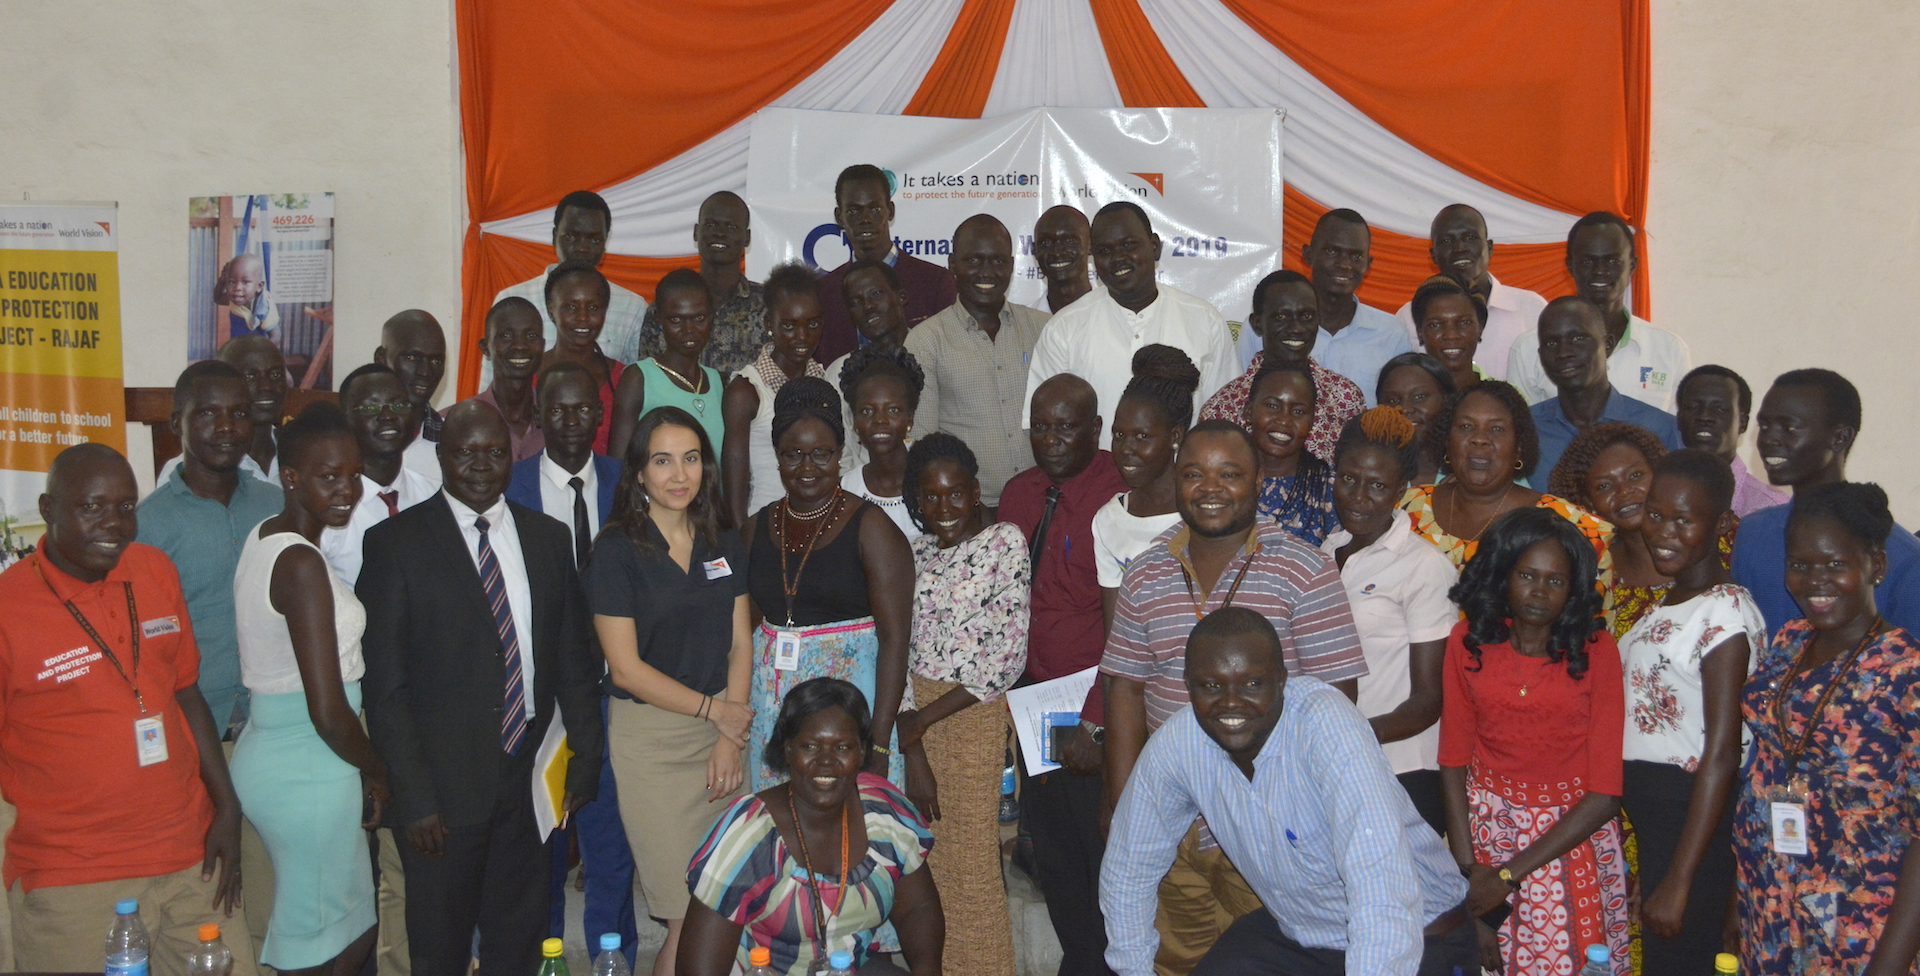 World Vision joins University of Juba and the Embassy of Canada in